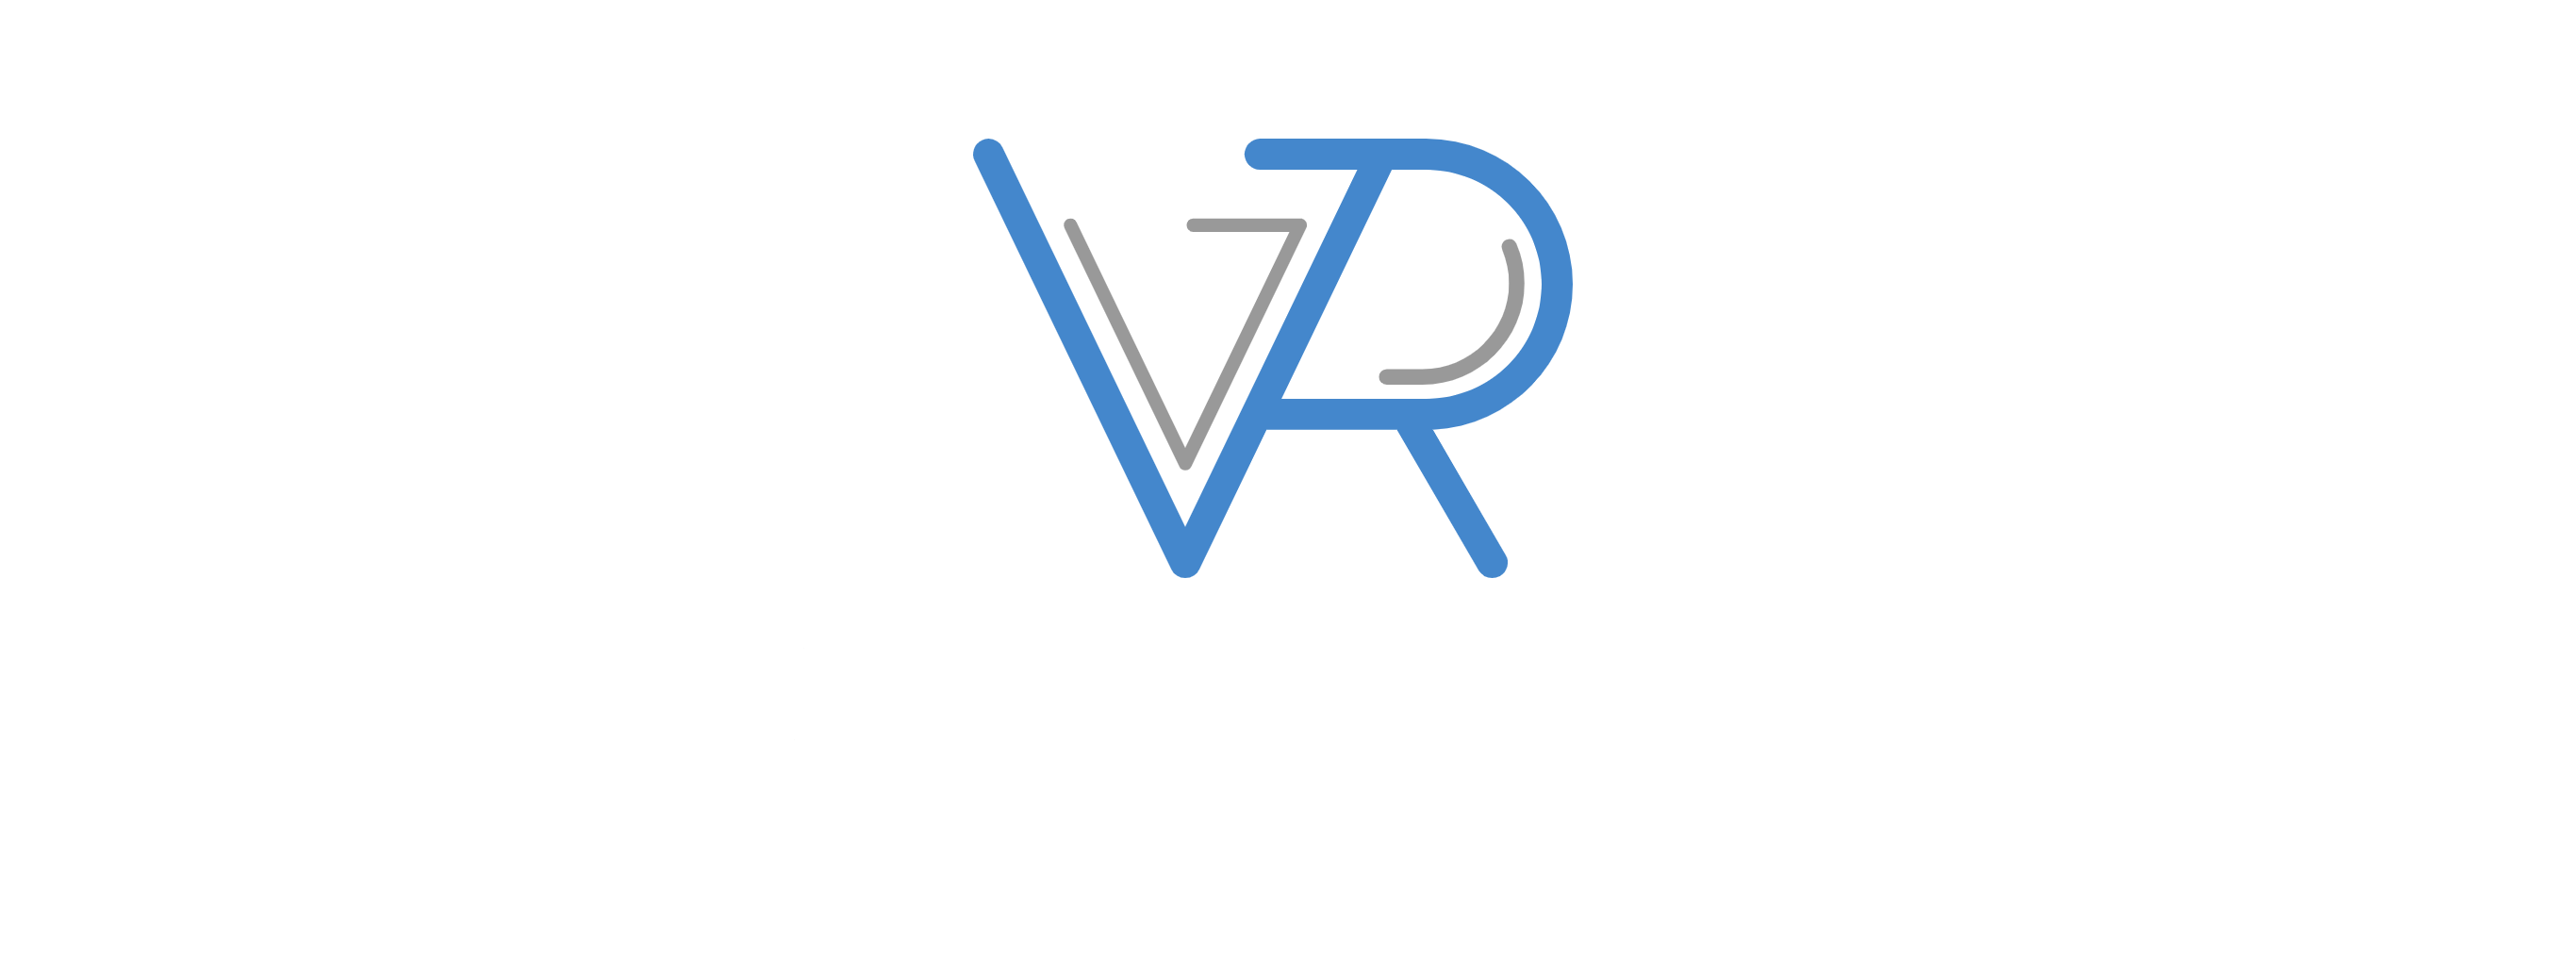 VR Escapism – Virtual Reality Escape & Board Game Cafe